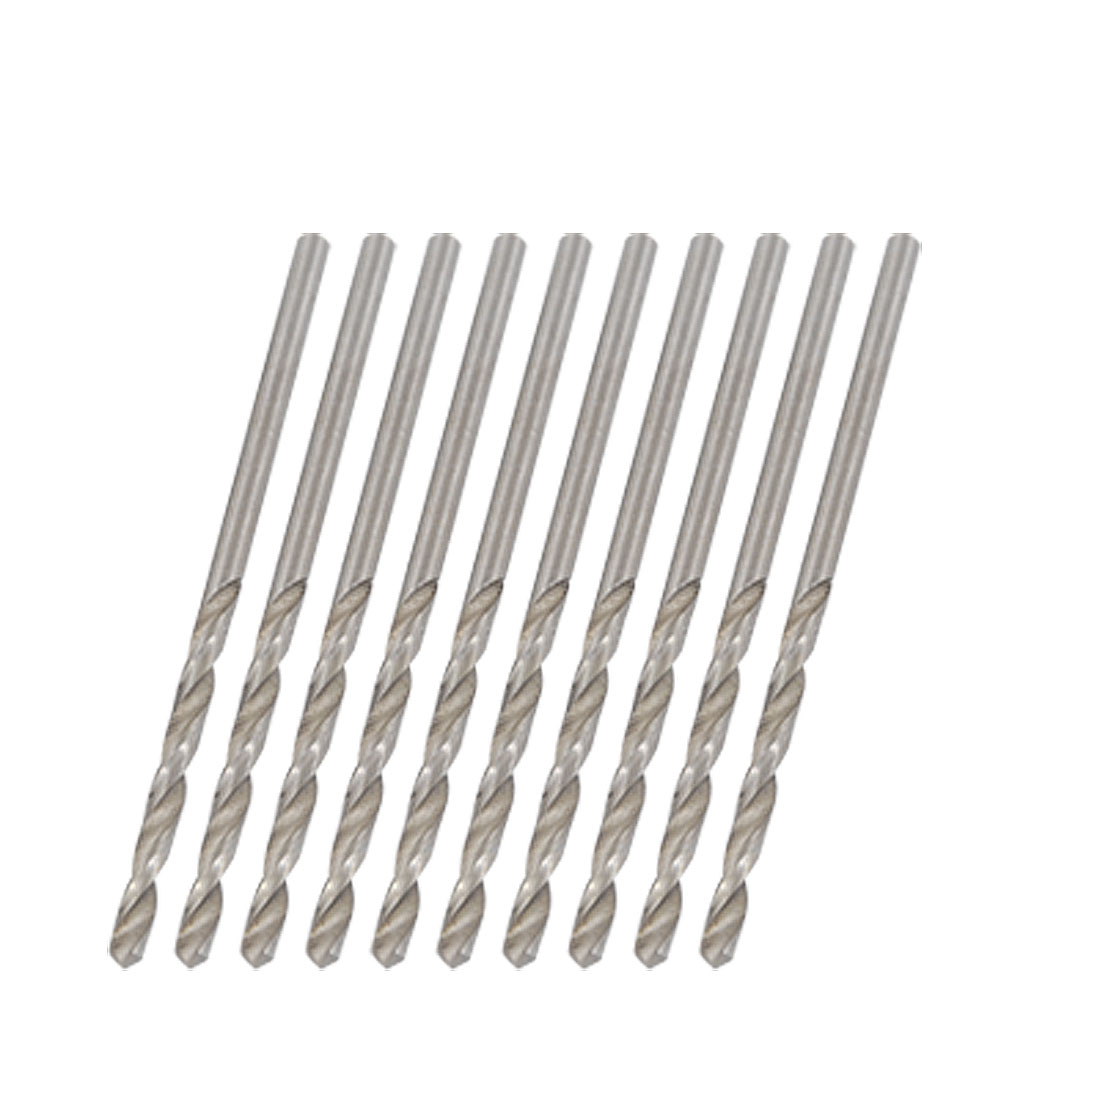 Helix Flute 2.1mm Diameter Metal Spiral Twist Drill Bit 10 PCS